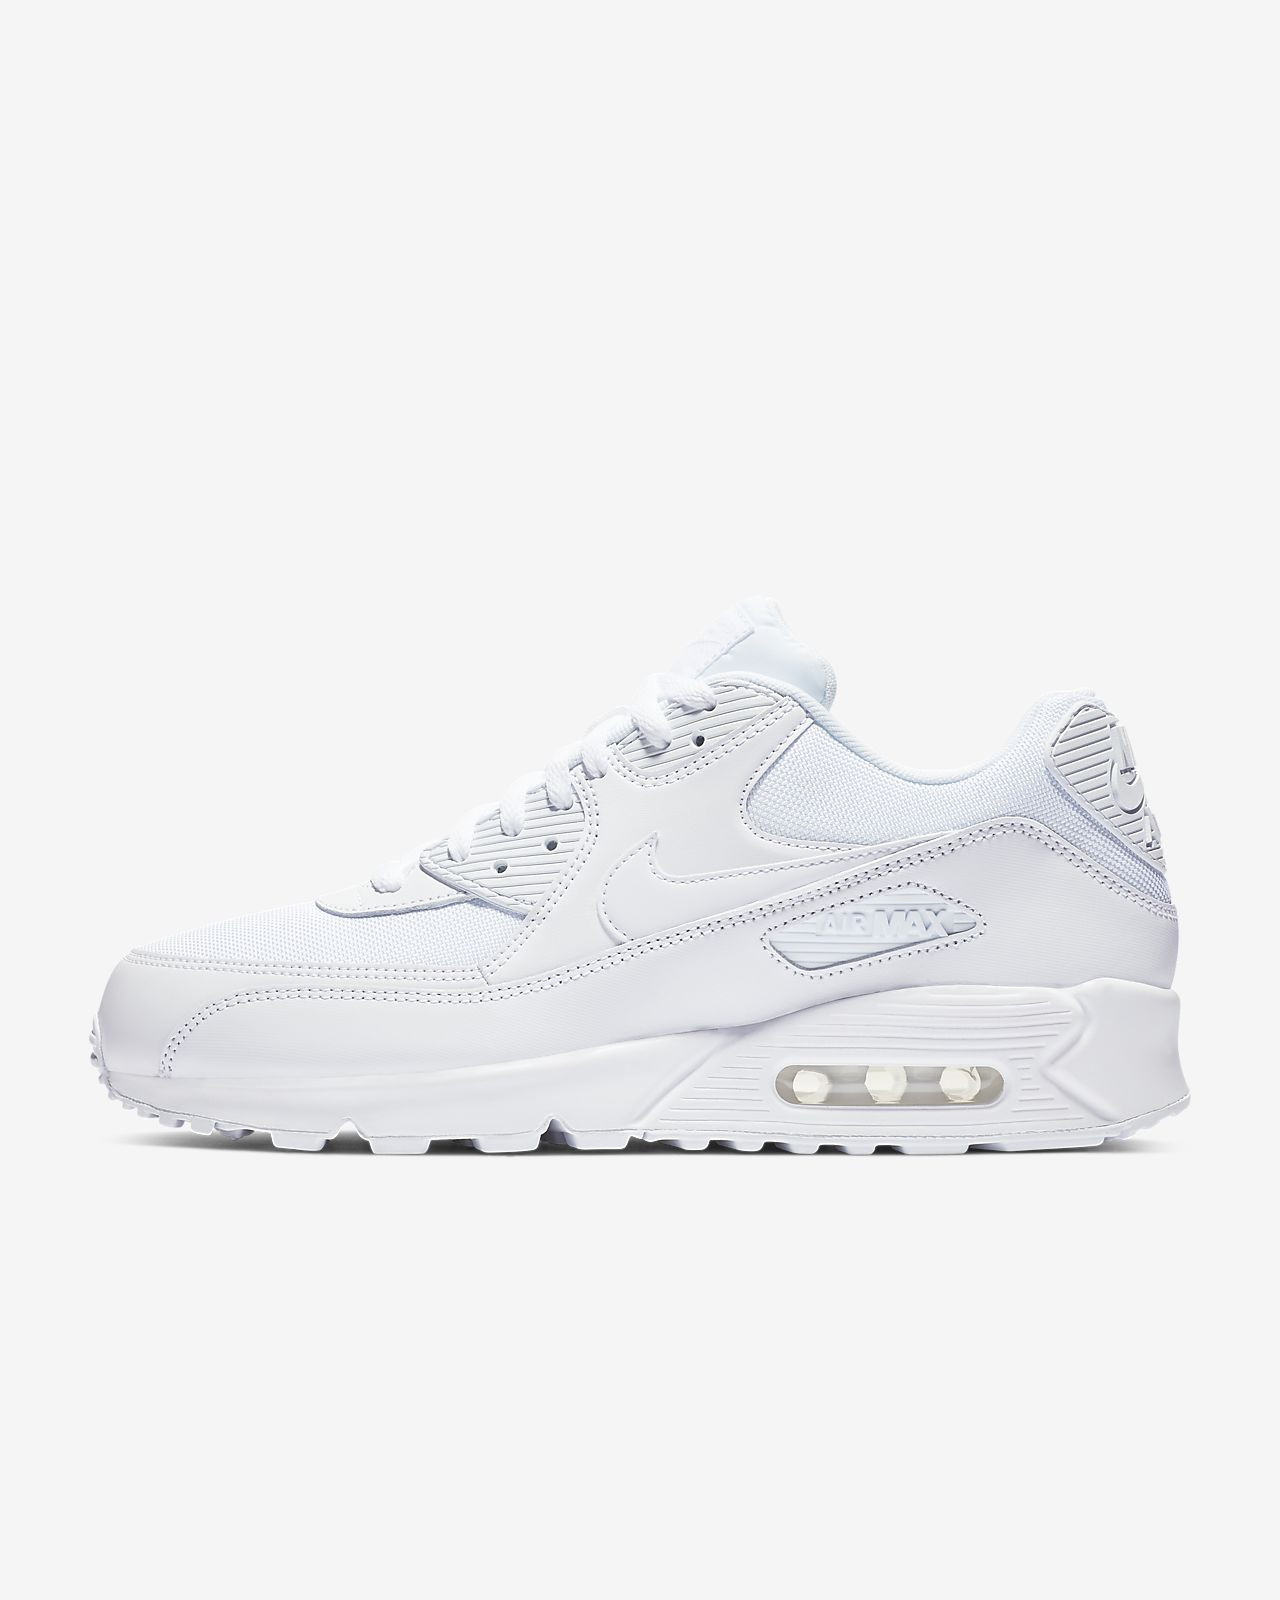 save off bdec2 9a9eb ... Skon Nike Air Max 90 Essential för män